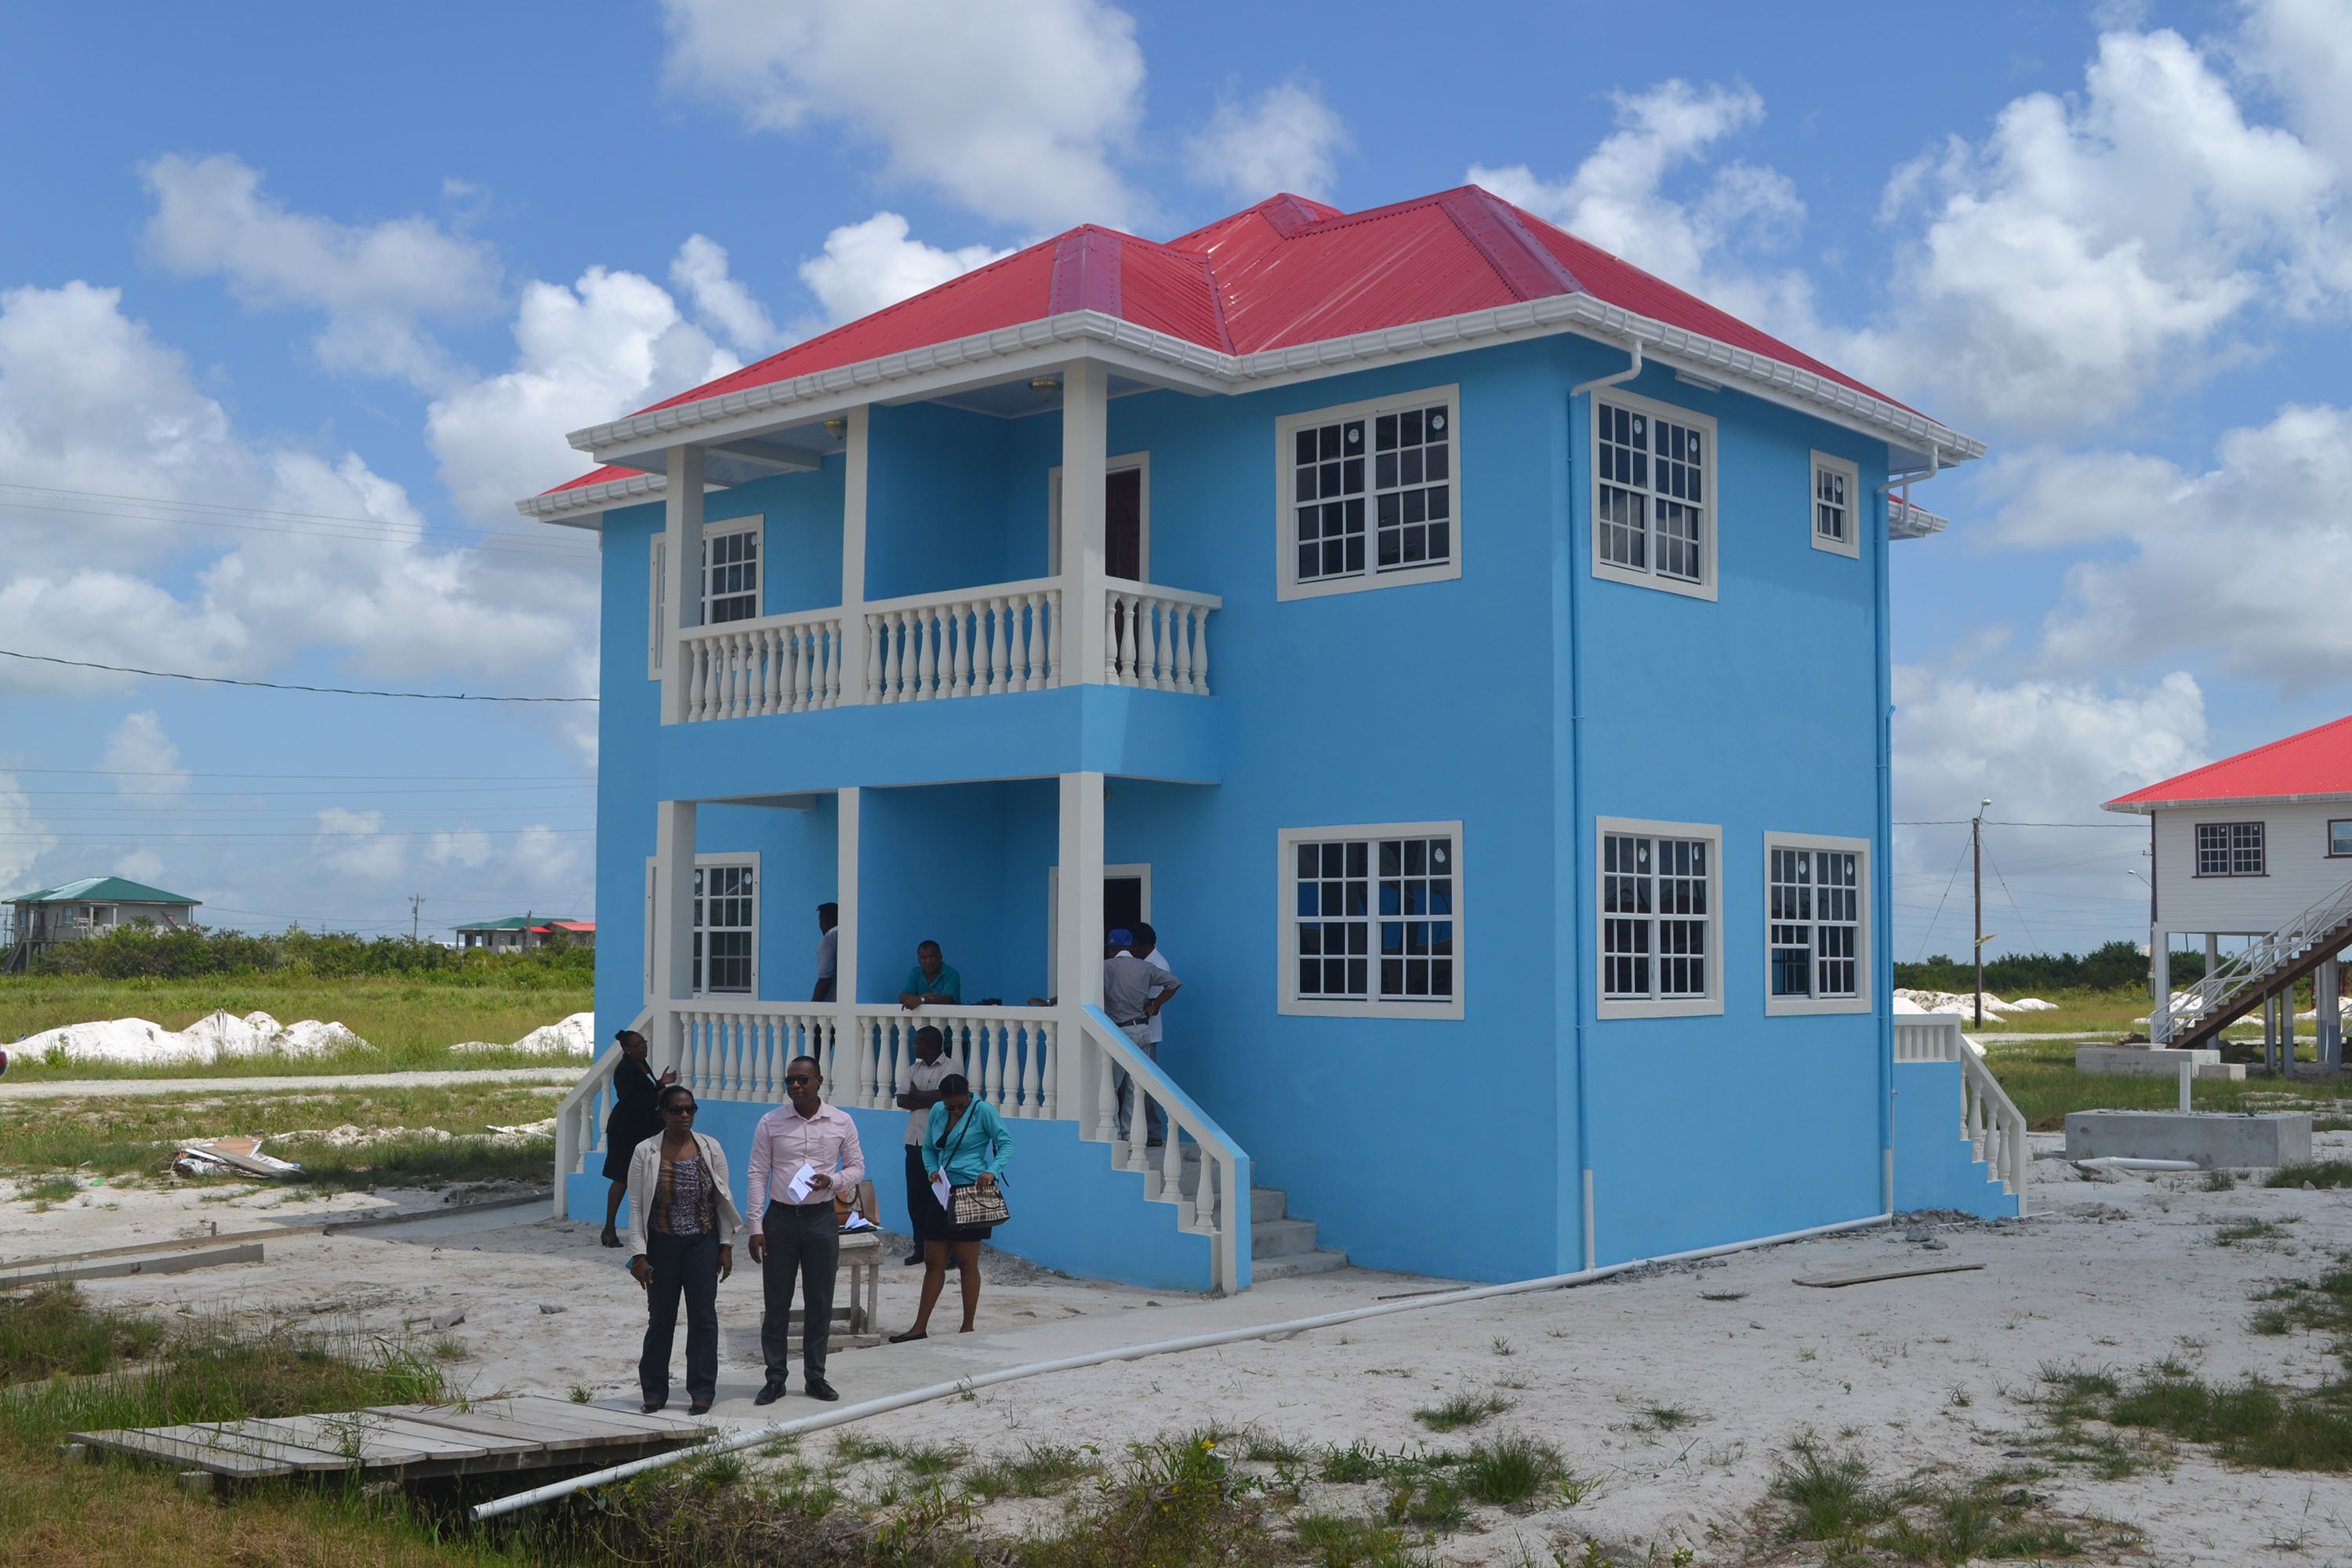 Home owners get keys to verance model homes – Stabroek News on flat house in canada, flat houses us, flat house in cambodia, flat houses in spain, flat house in latvia, flat houses in trinidad, flat house with garage, flat house in singapore, flat houses in london, flat house design,